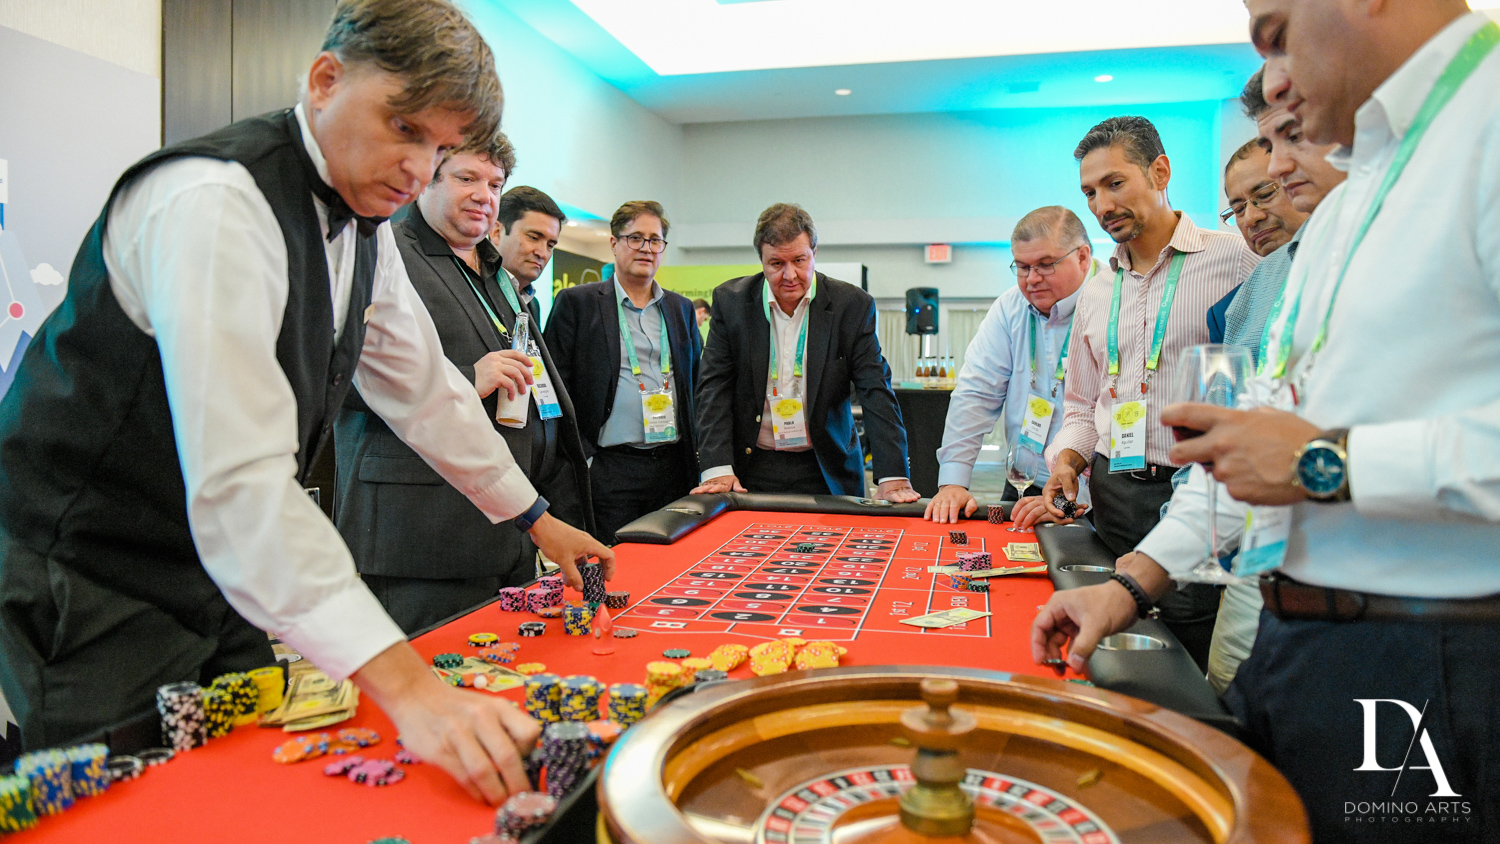 adult activities at Fintech Americas Banking Conference Miami by Domino Arts Photography